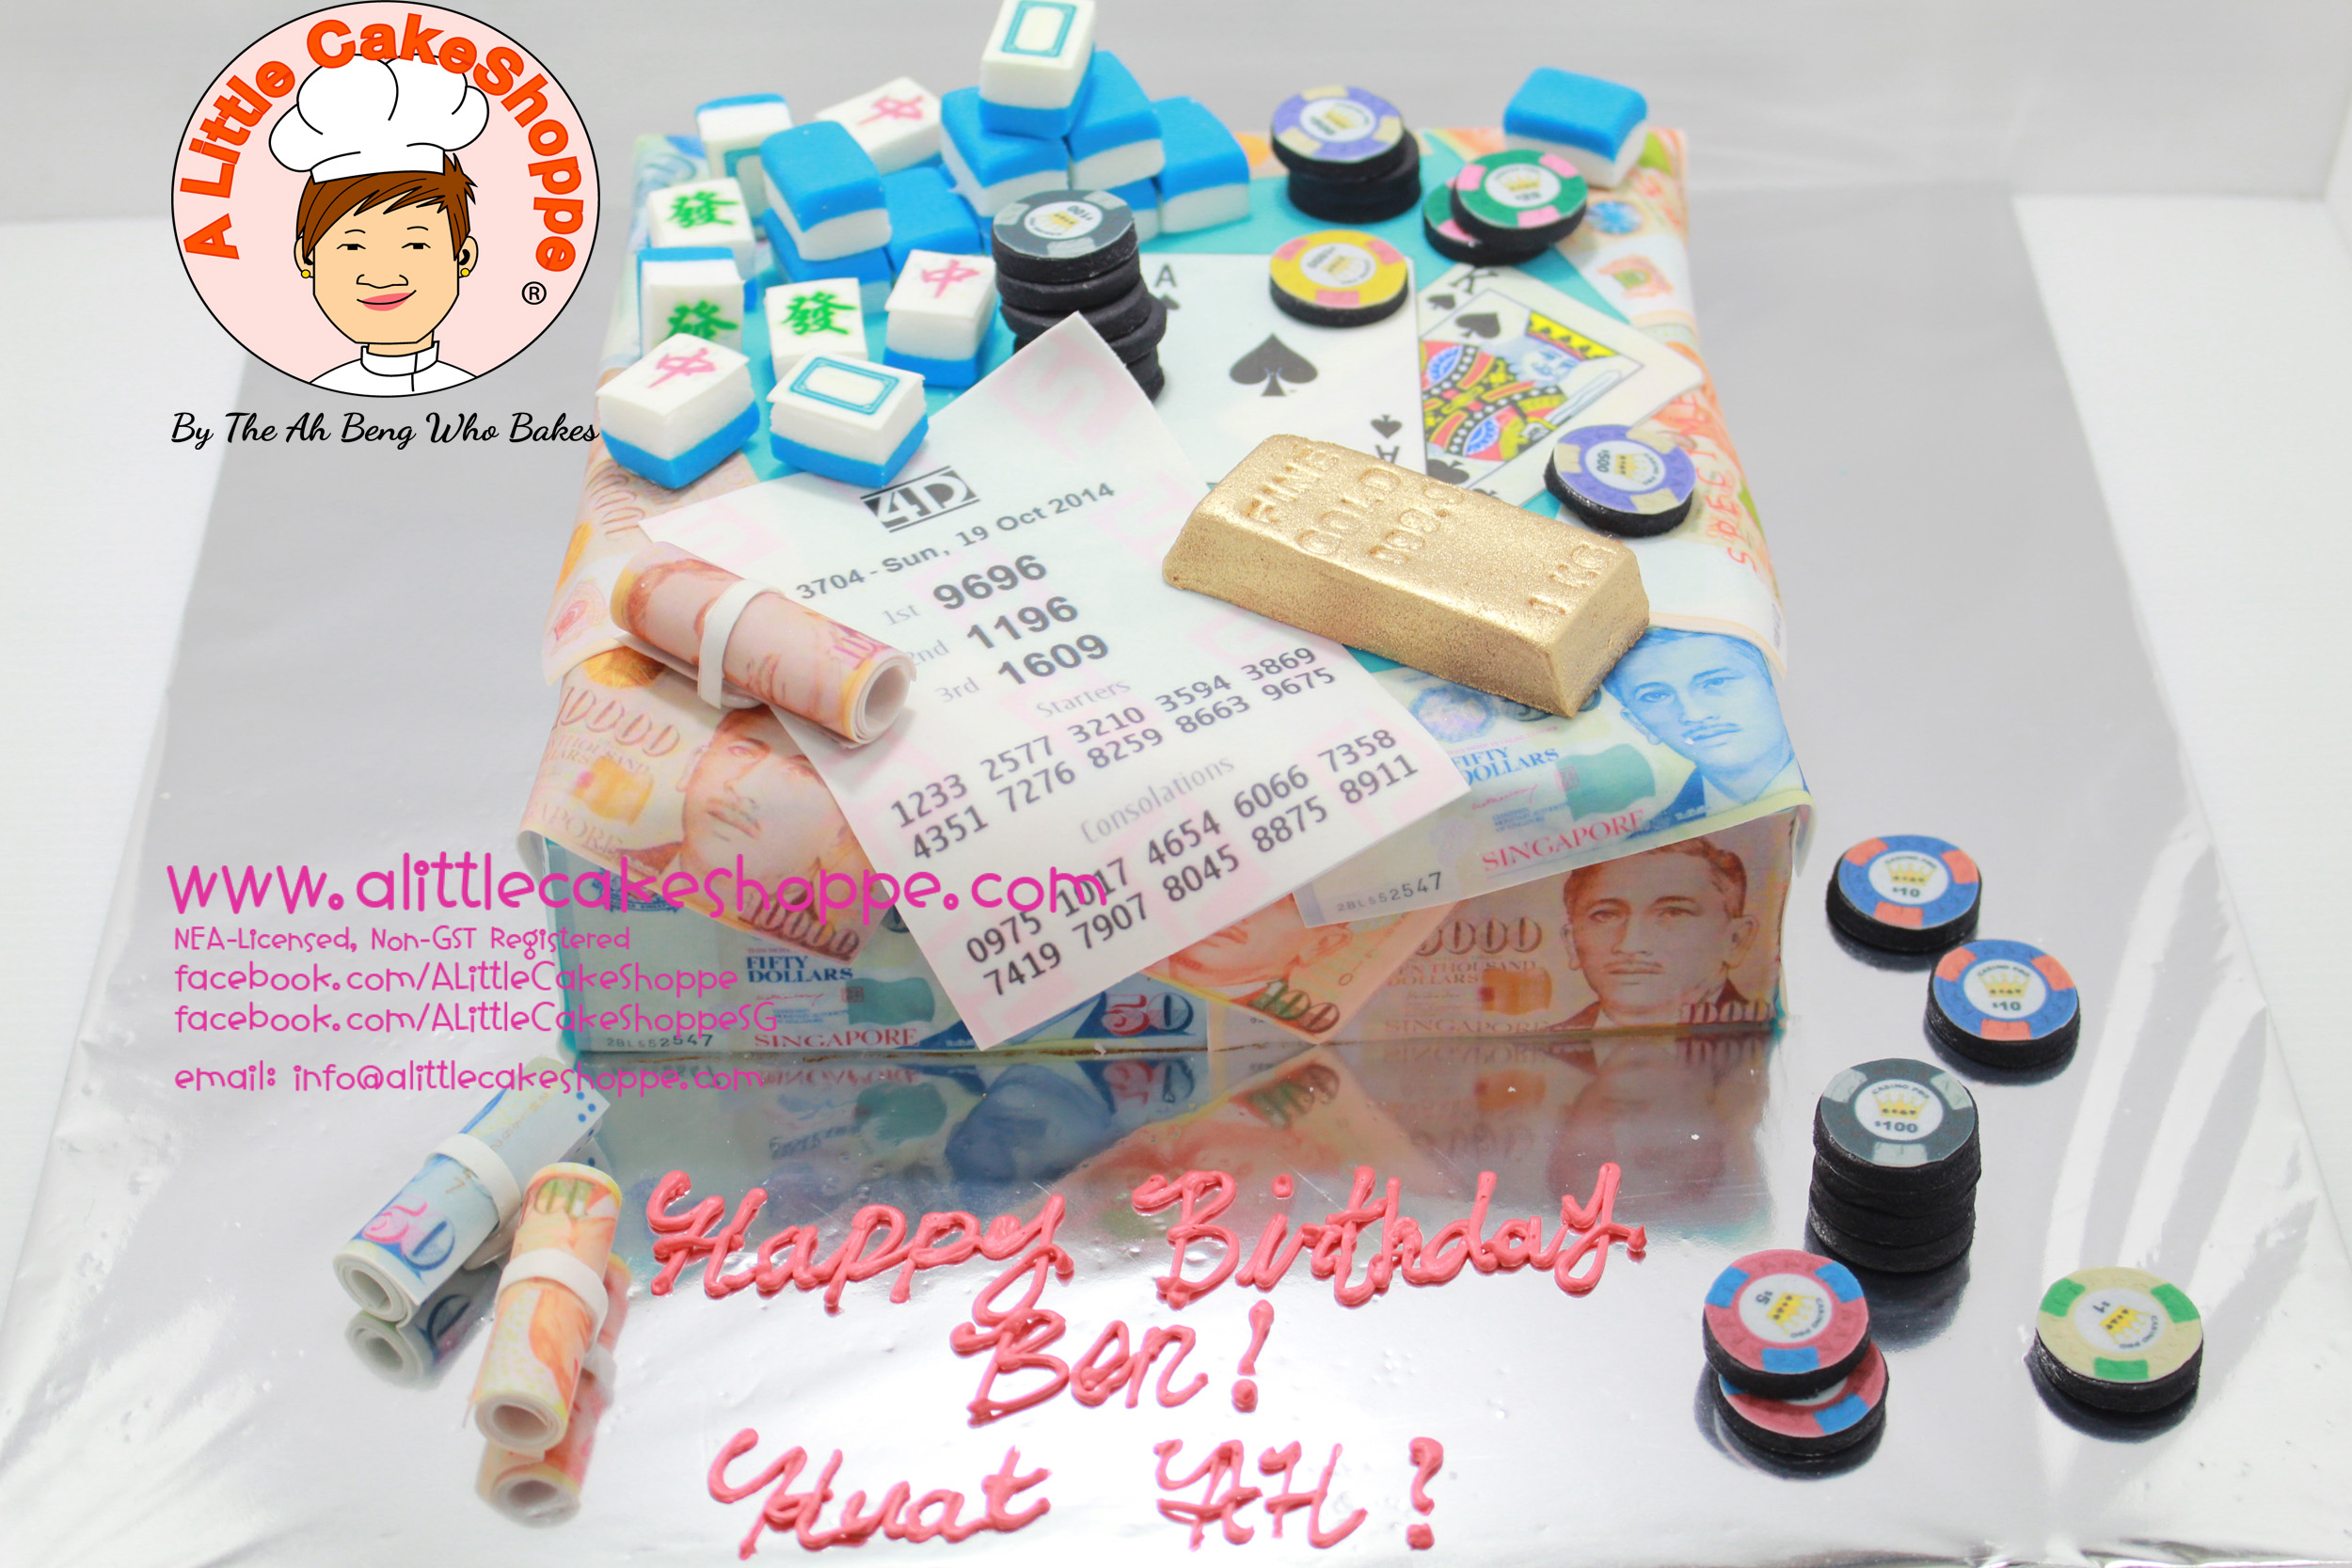 Best Customised Cake Shop Singapore custom cake 2D 3D birthday cake cupcakes desserts wedding corporate events anniversary 1st birthday 21st birthday fondant fresh cream buttercream cakes alittlecakeshoppe a little cake shoppe compliments review singapore bakers SG cake shop cakeshop ah beng who bakes gamblng mahjong money cake